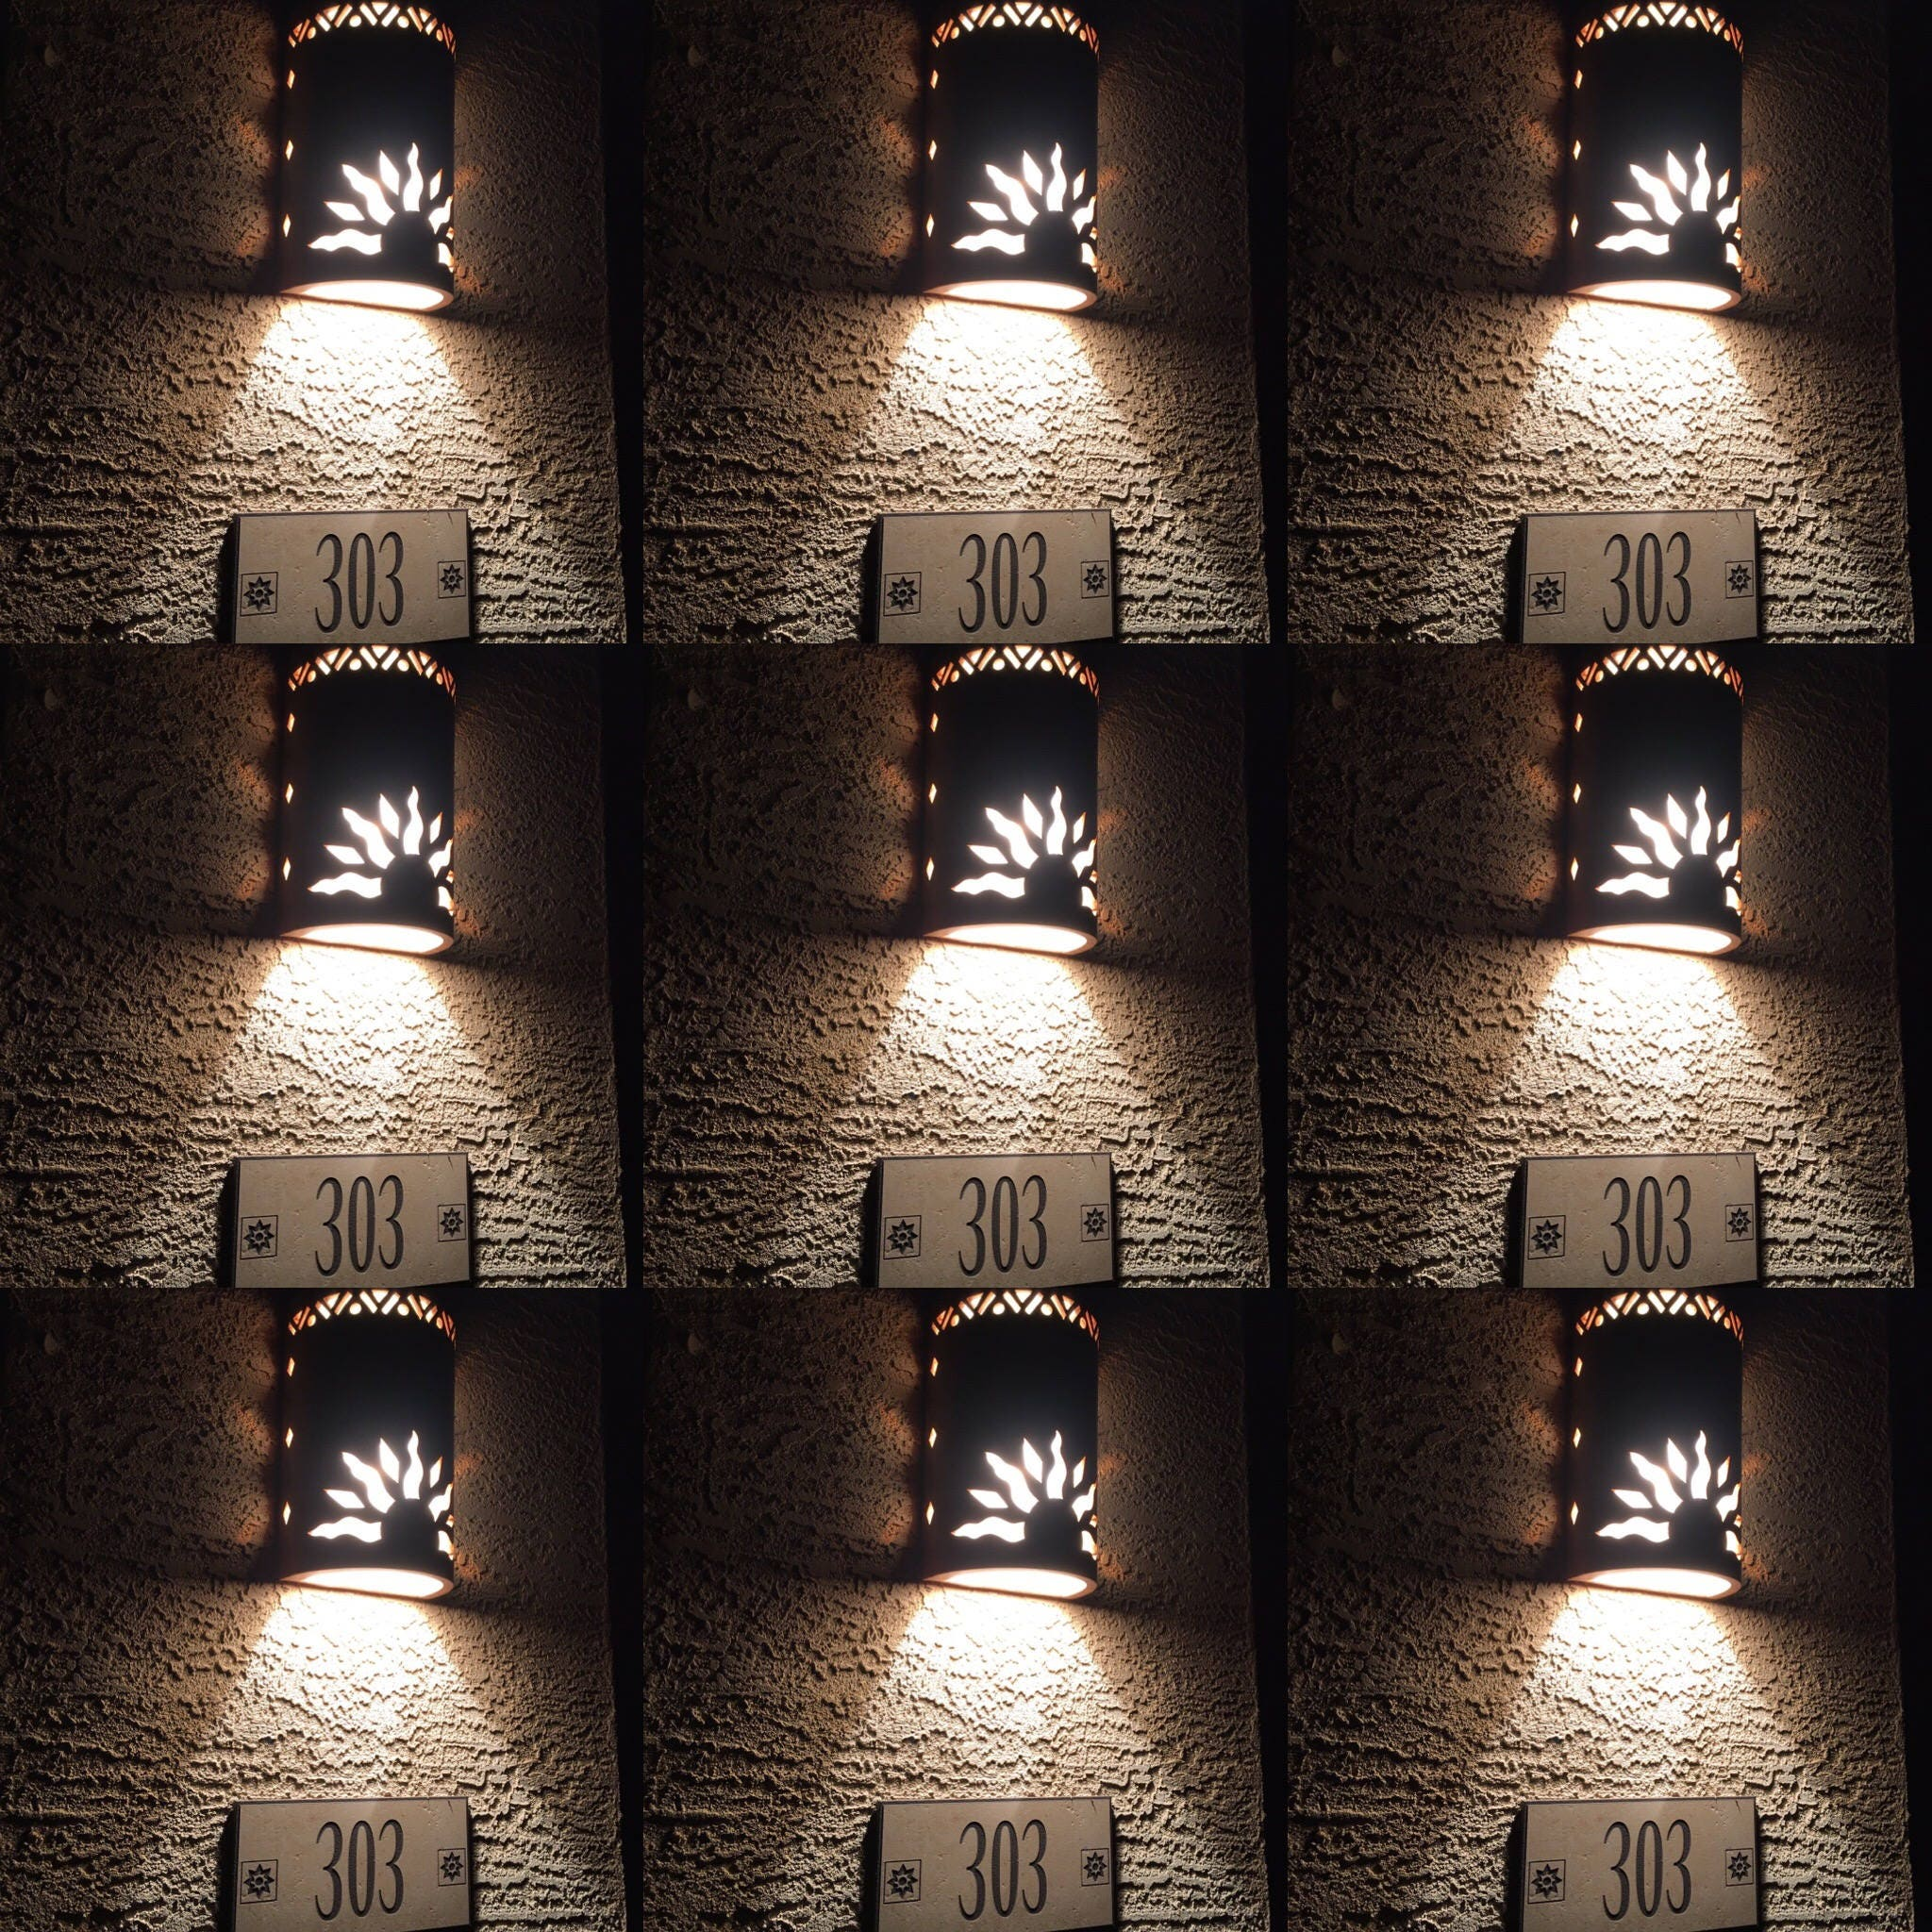 Skyrim Wall Sconces Not Working: Outdoor Wall Sconce Half Sun And Details Rustic Light